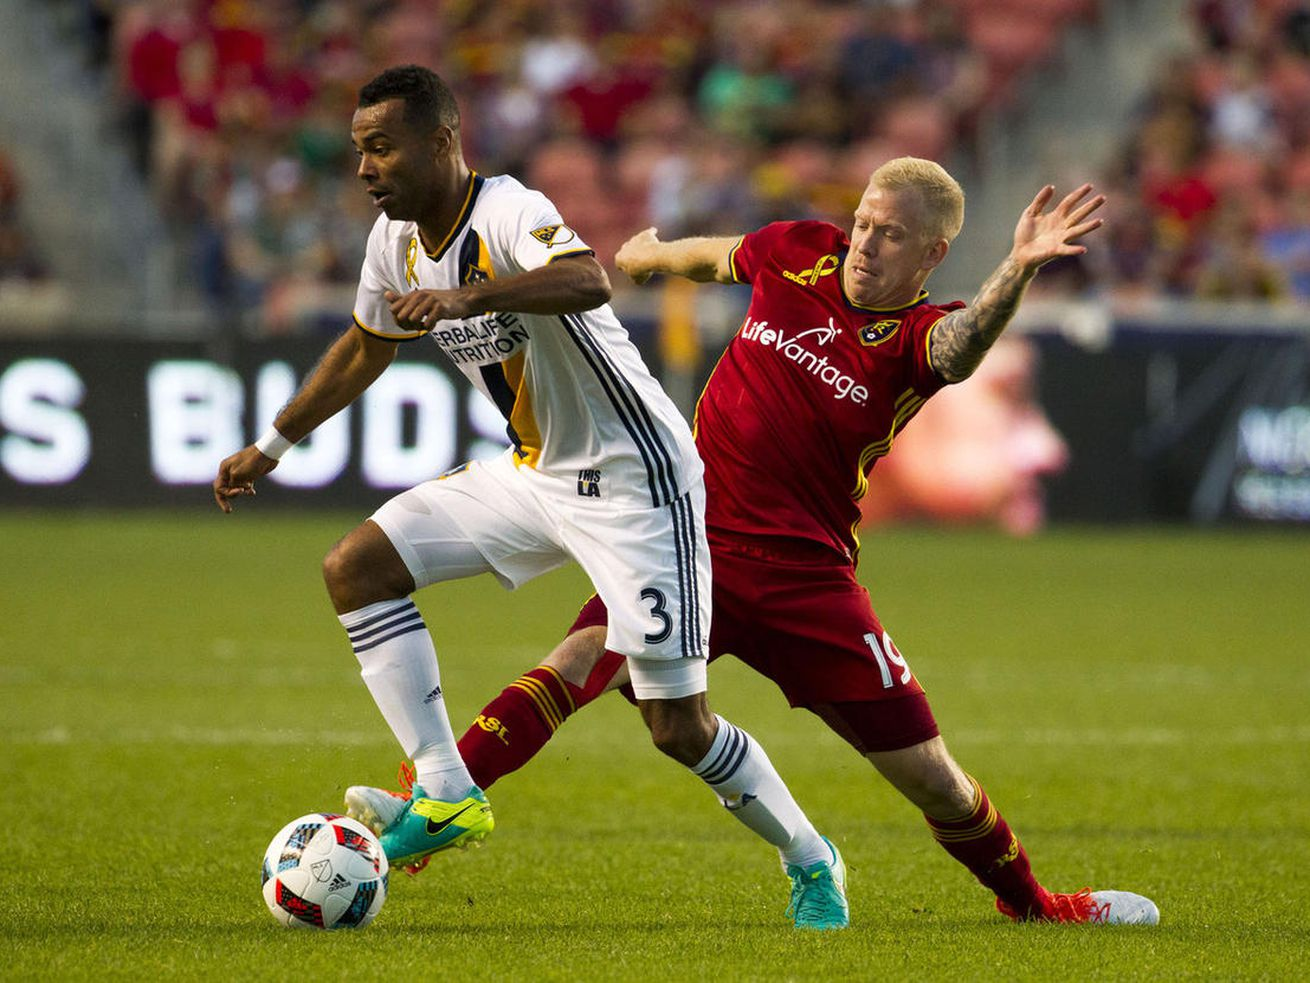 Real Salt Lake midfielder Luke Mulholland (19) defends against Los Angeles Galaxy defender Ashley Cole (3) during an MLS soccer match in Sandy on Wednesday, Sept. 7, 2016.